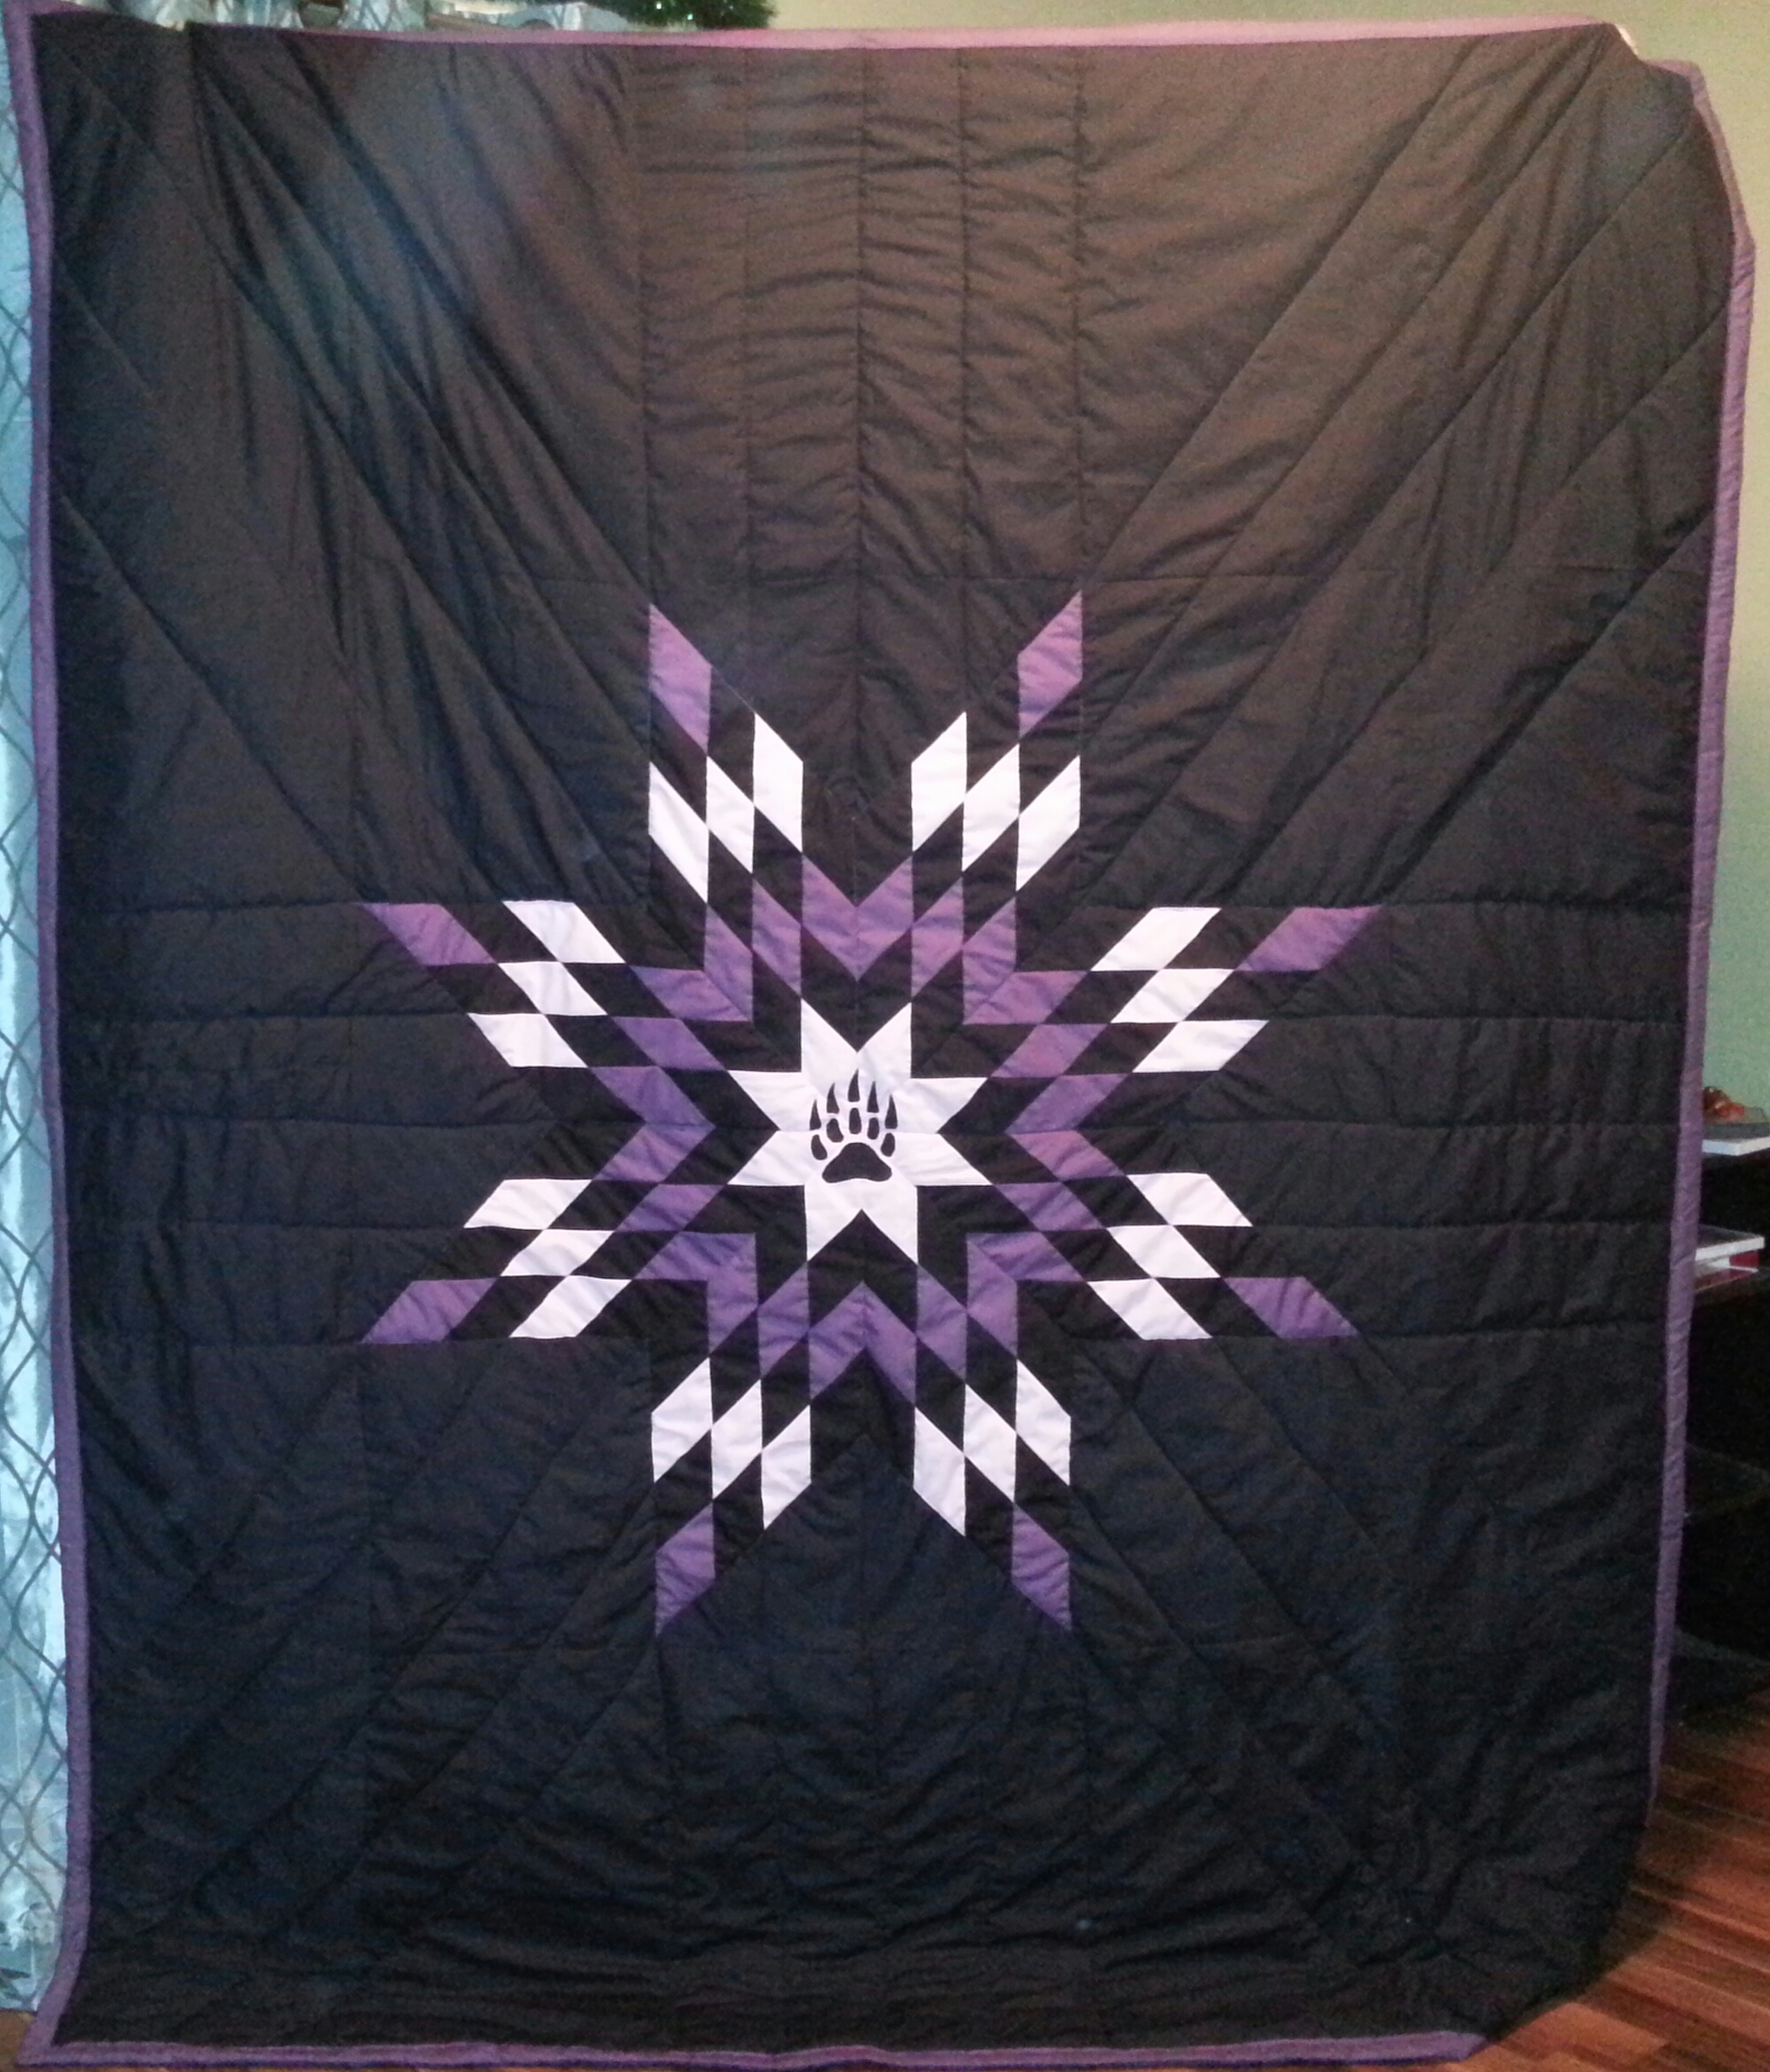 187 Bearpaw Twinblanket1 Cree Star Gifts